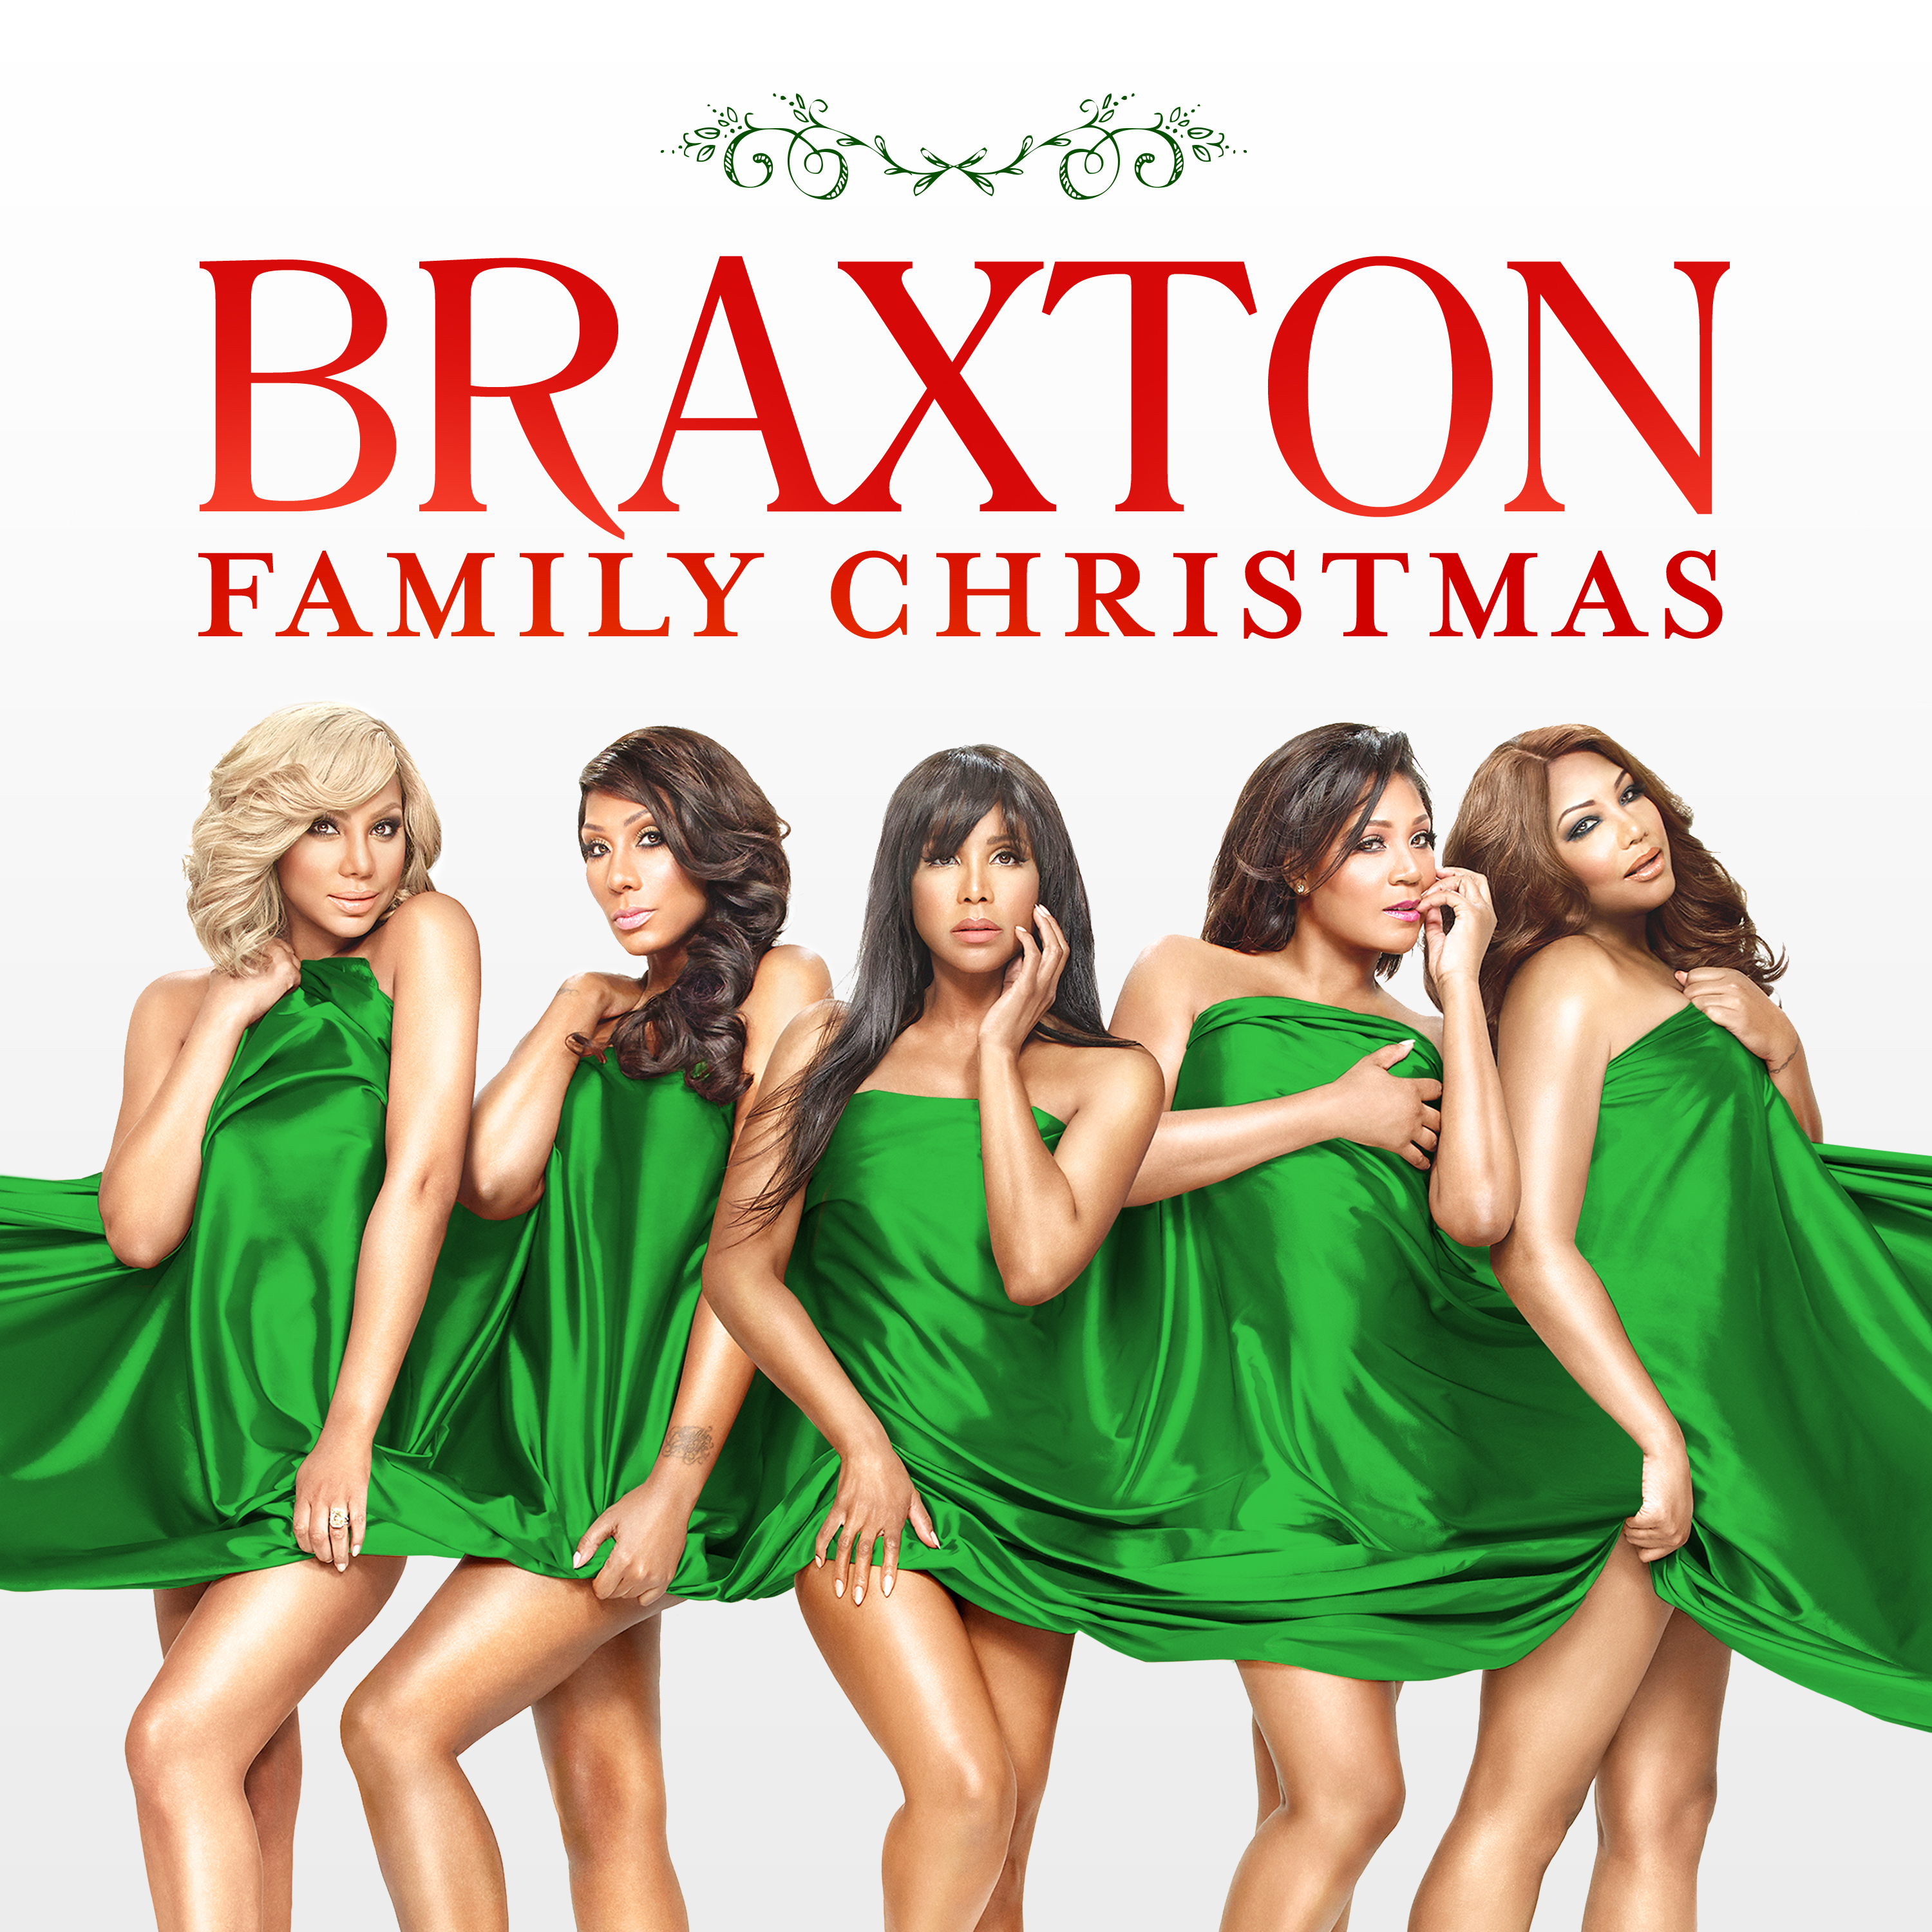 Braxton Family Christmas